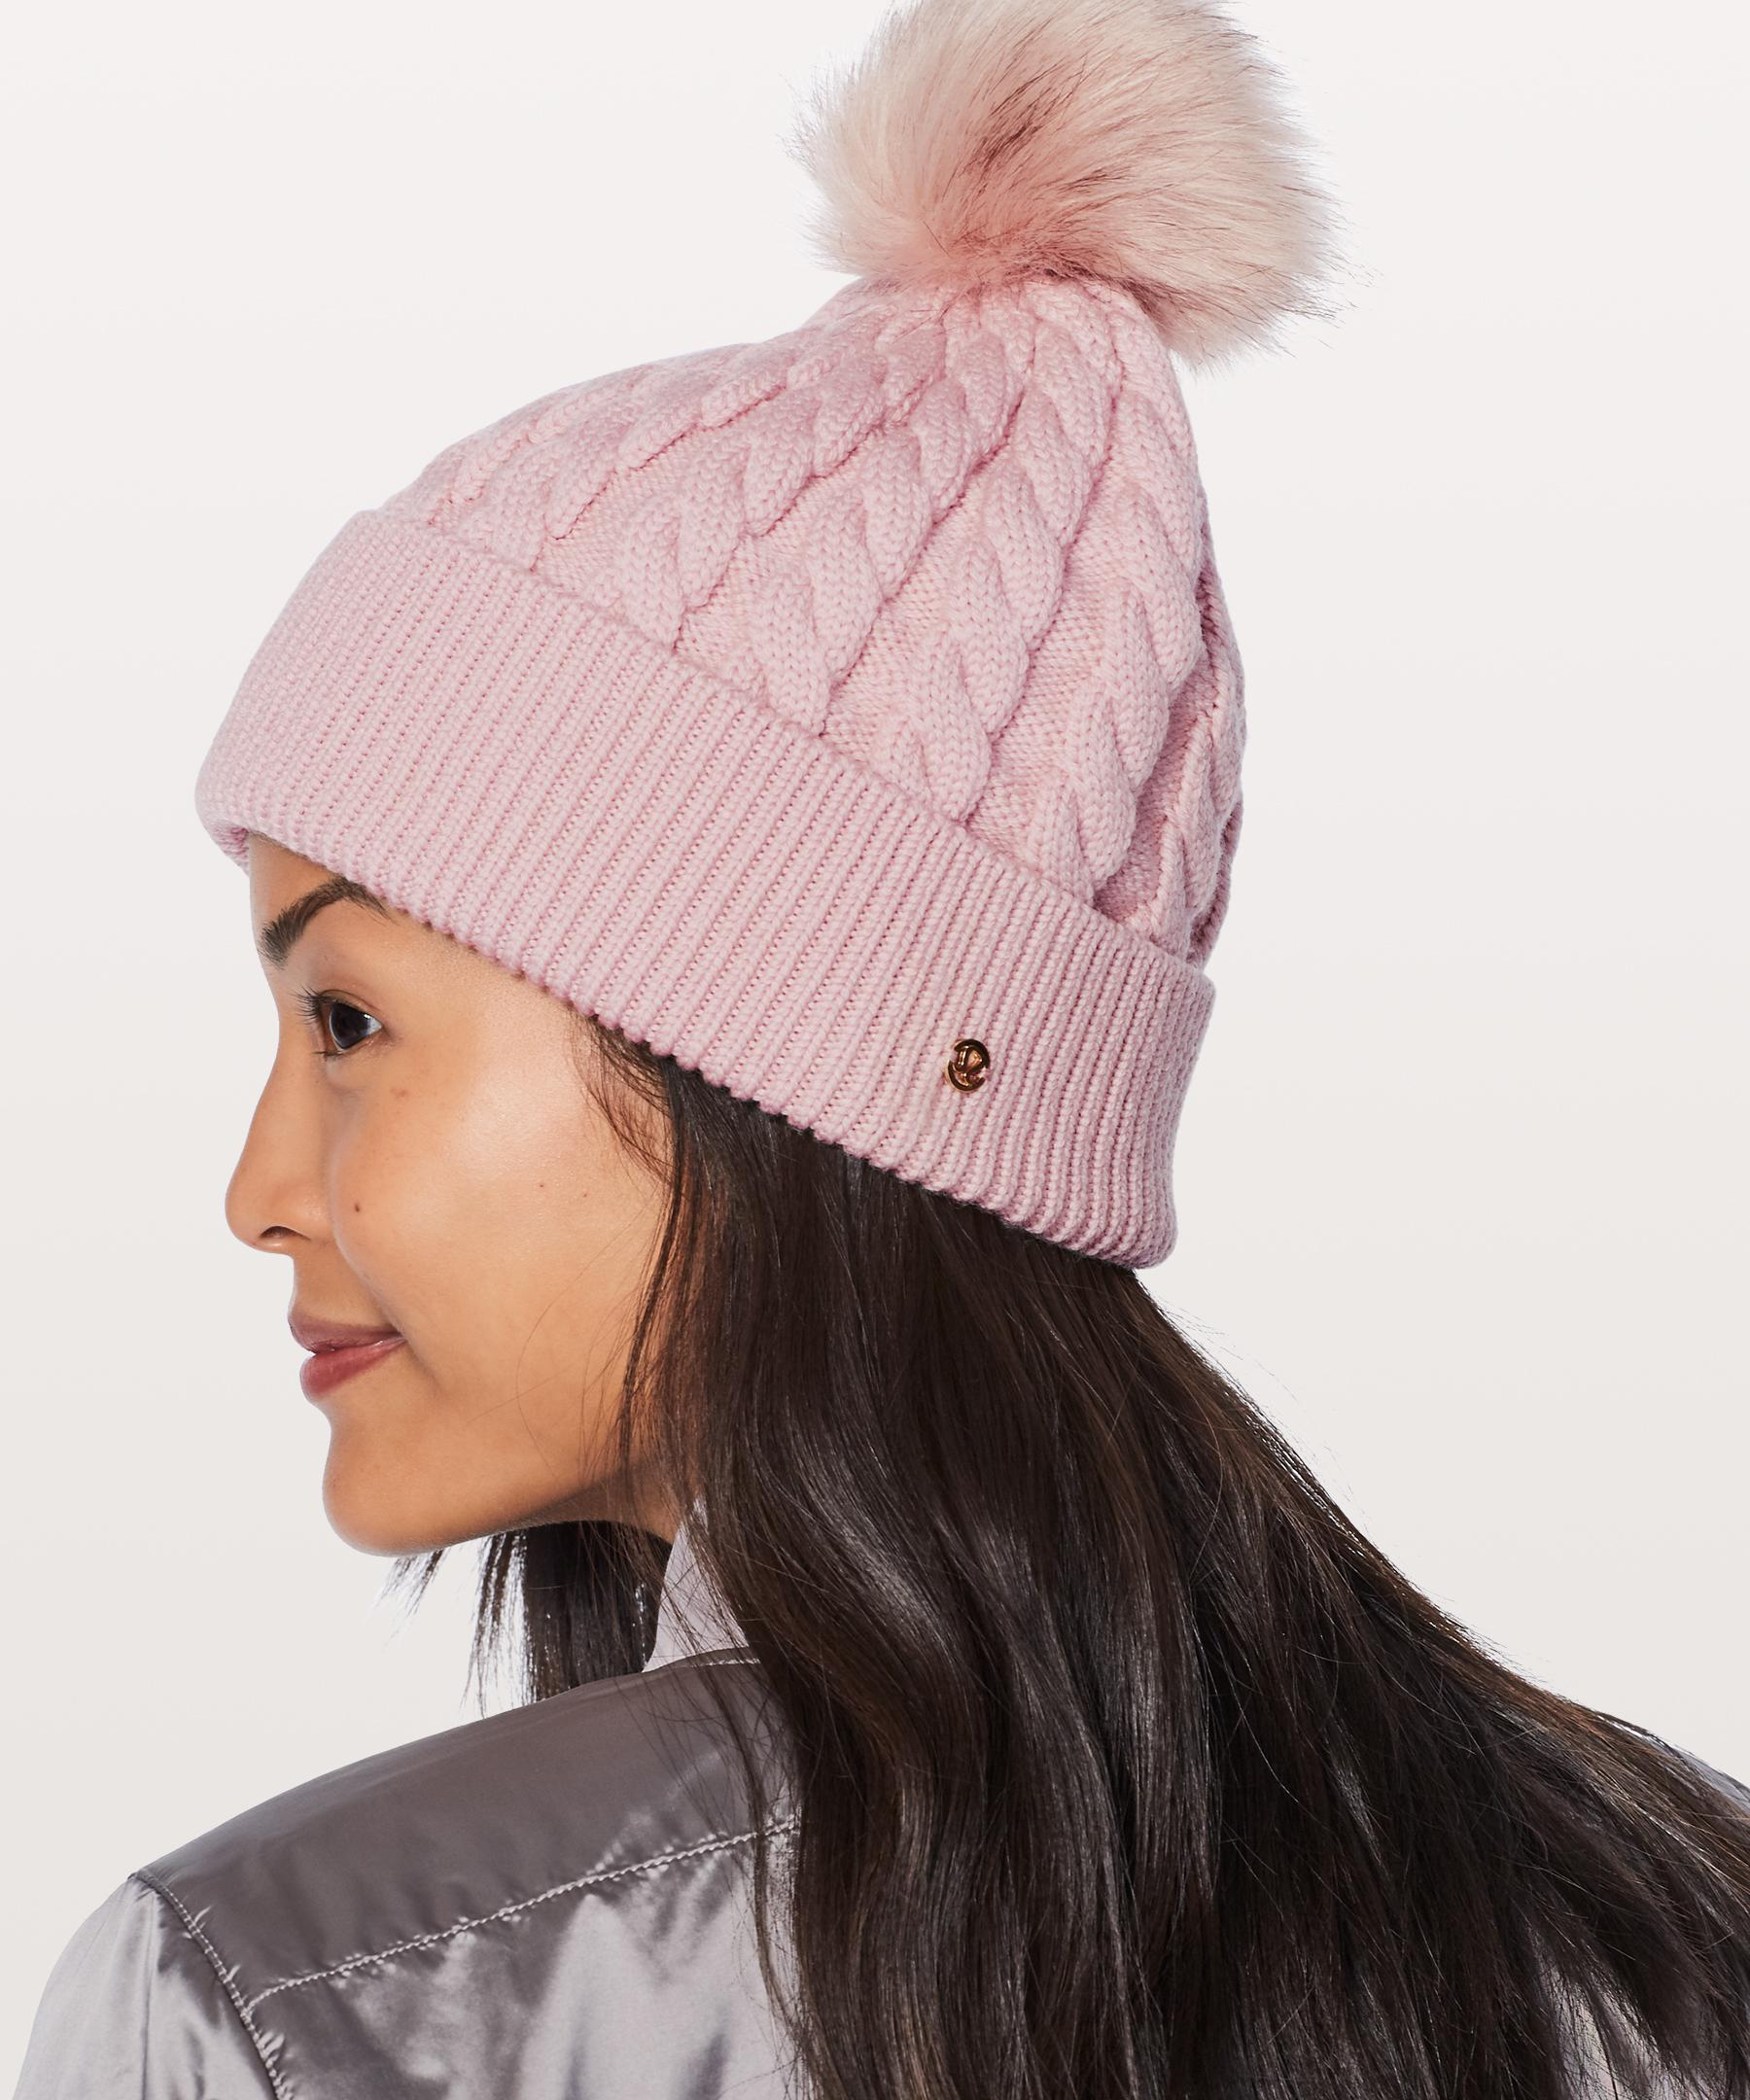 lululemon athletica Wool Be Toasty Toque in Pink - Lyst 26fb1f27ded